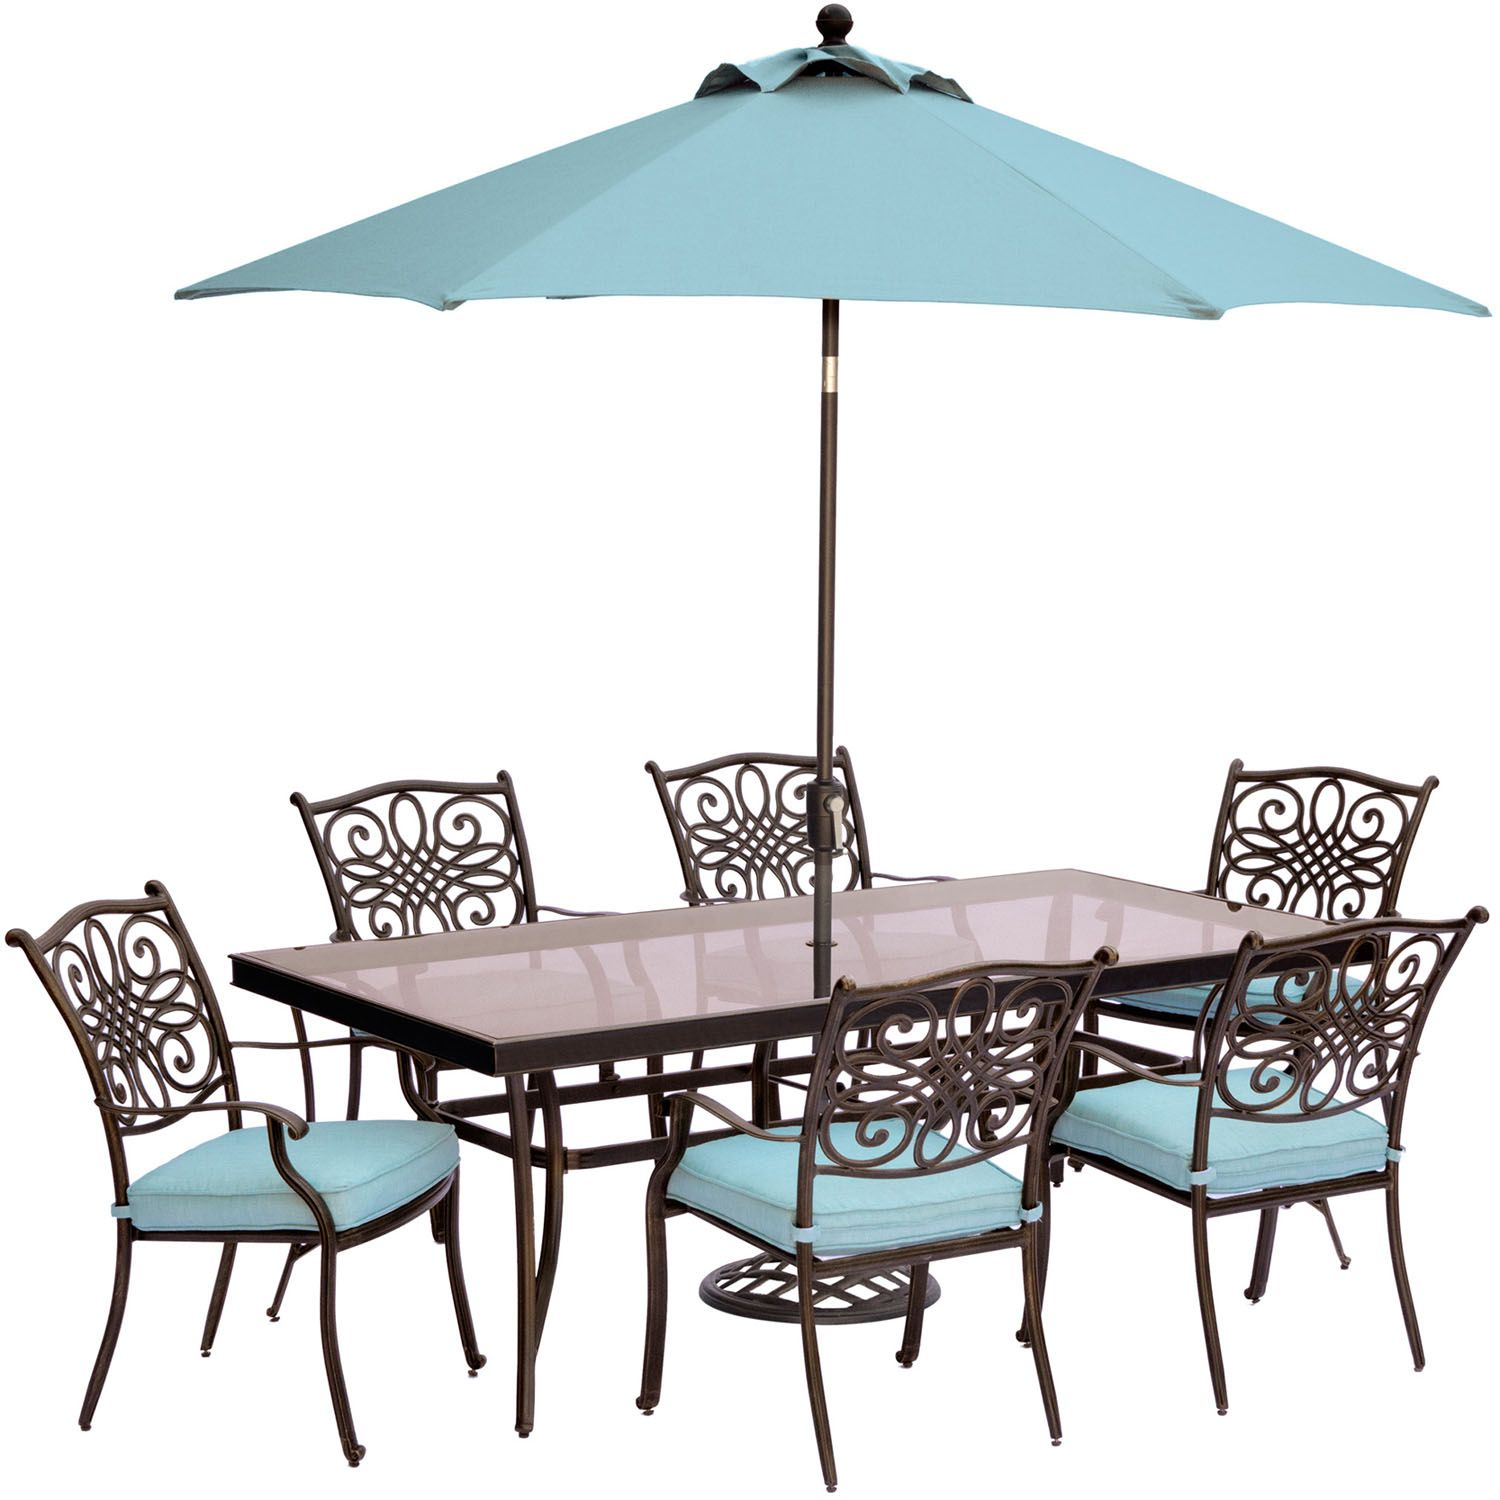 Hanover Traditions 7 Piece Dining Set In Blue With Extra Lar Dining Sets Modern Glass Top Dining Table Patio Dining Set